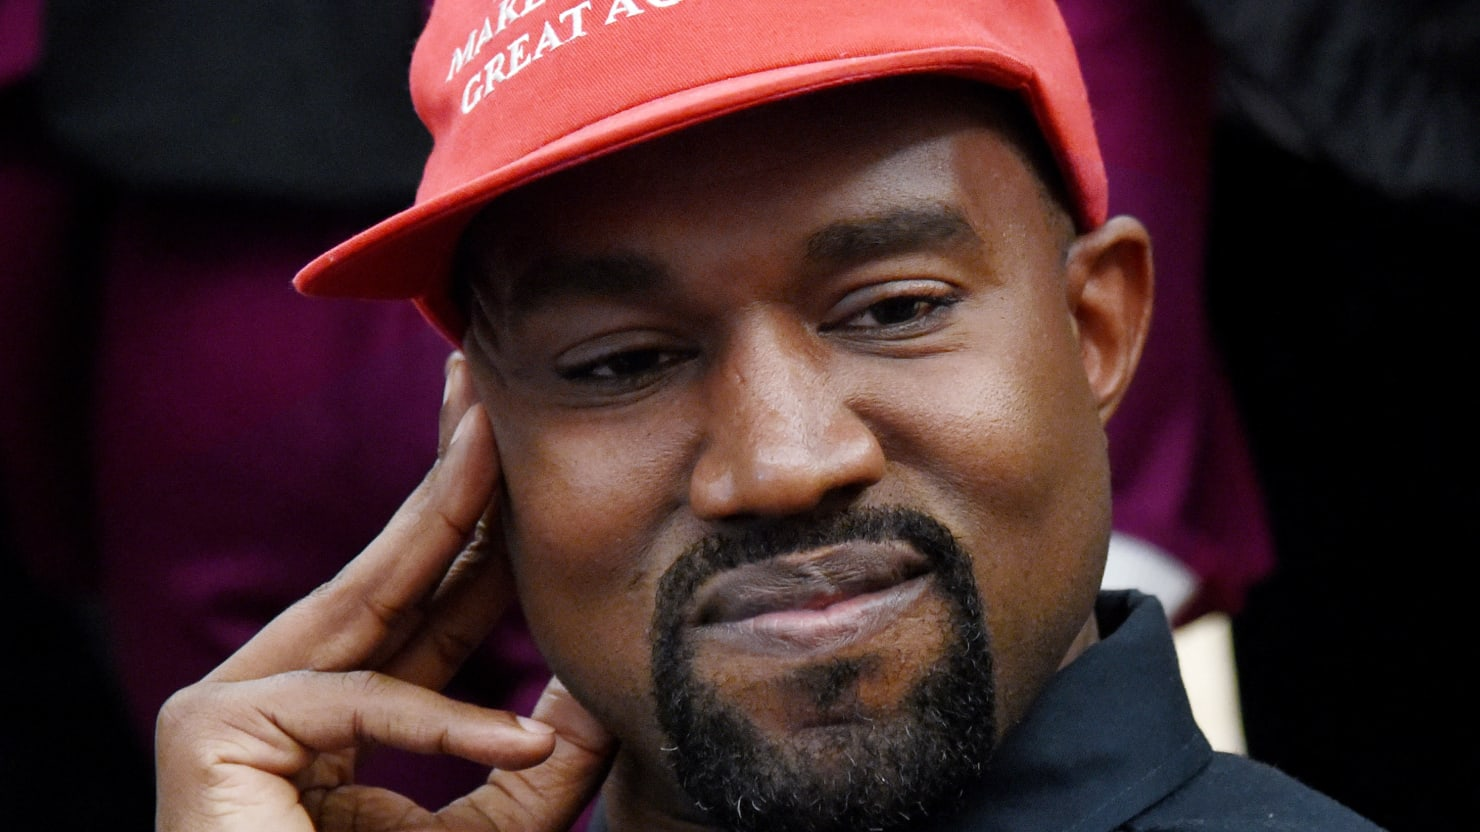 Billionaire Kanye West's Company Gets Multimillion-Dollar PPP Loan From Trump Admin